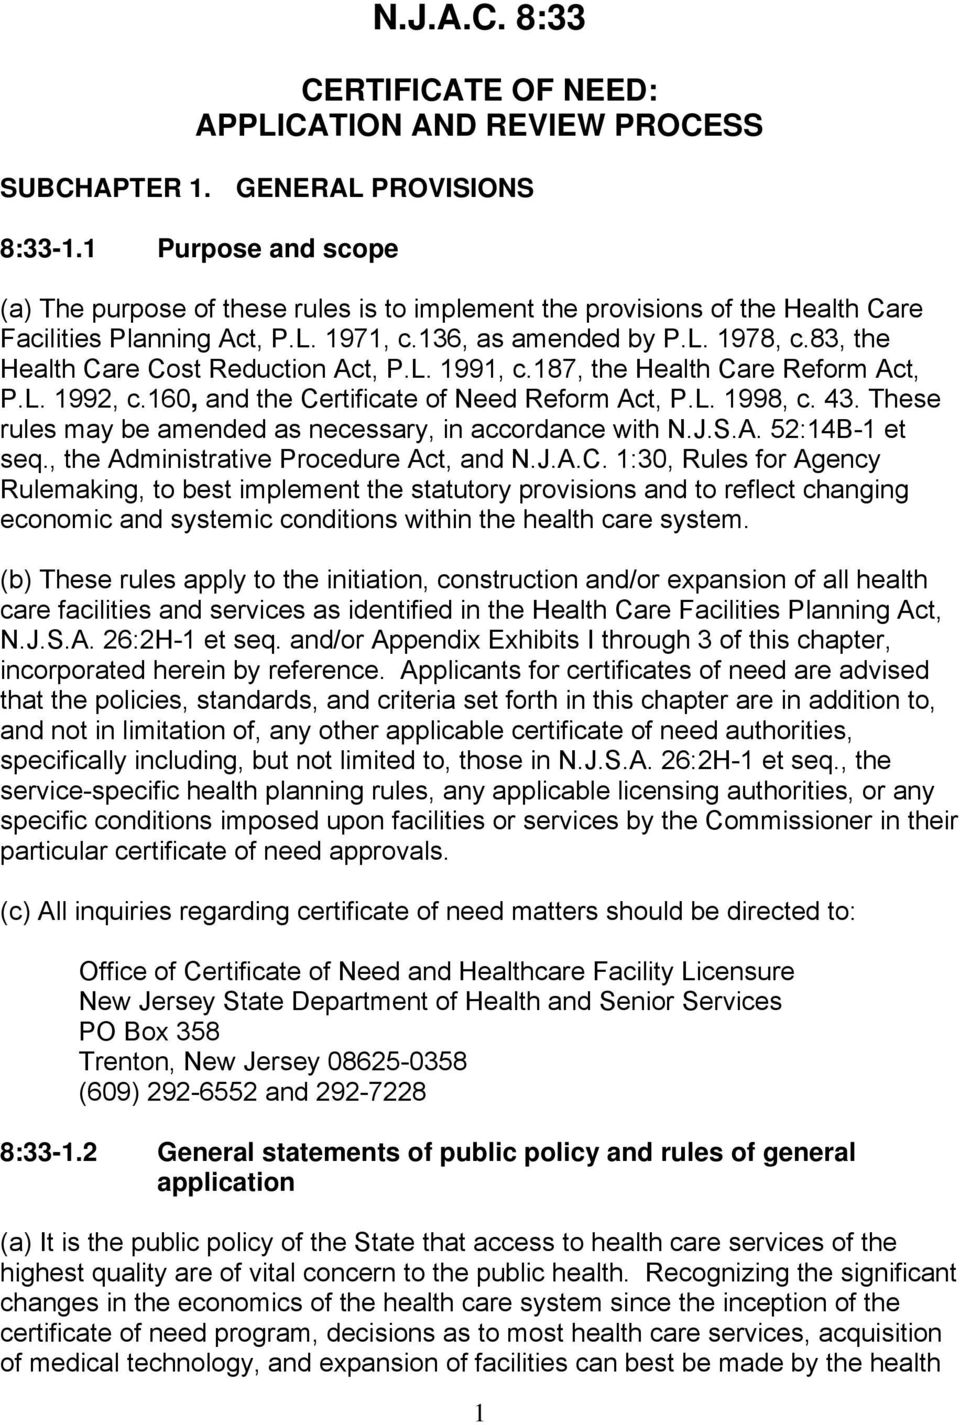 83, the Health Care Cost Reduction Act, P.L. 1991, c.187, the Health Care Reform Act, P.L. 1992, c.160, and the Certificate of Need Reform Act, P.L. 1998, c. 43.